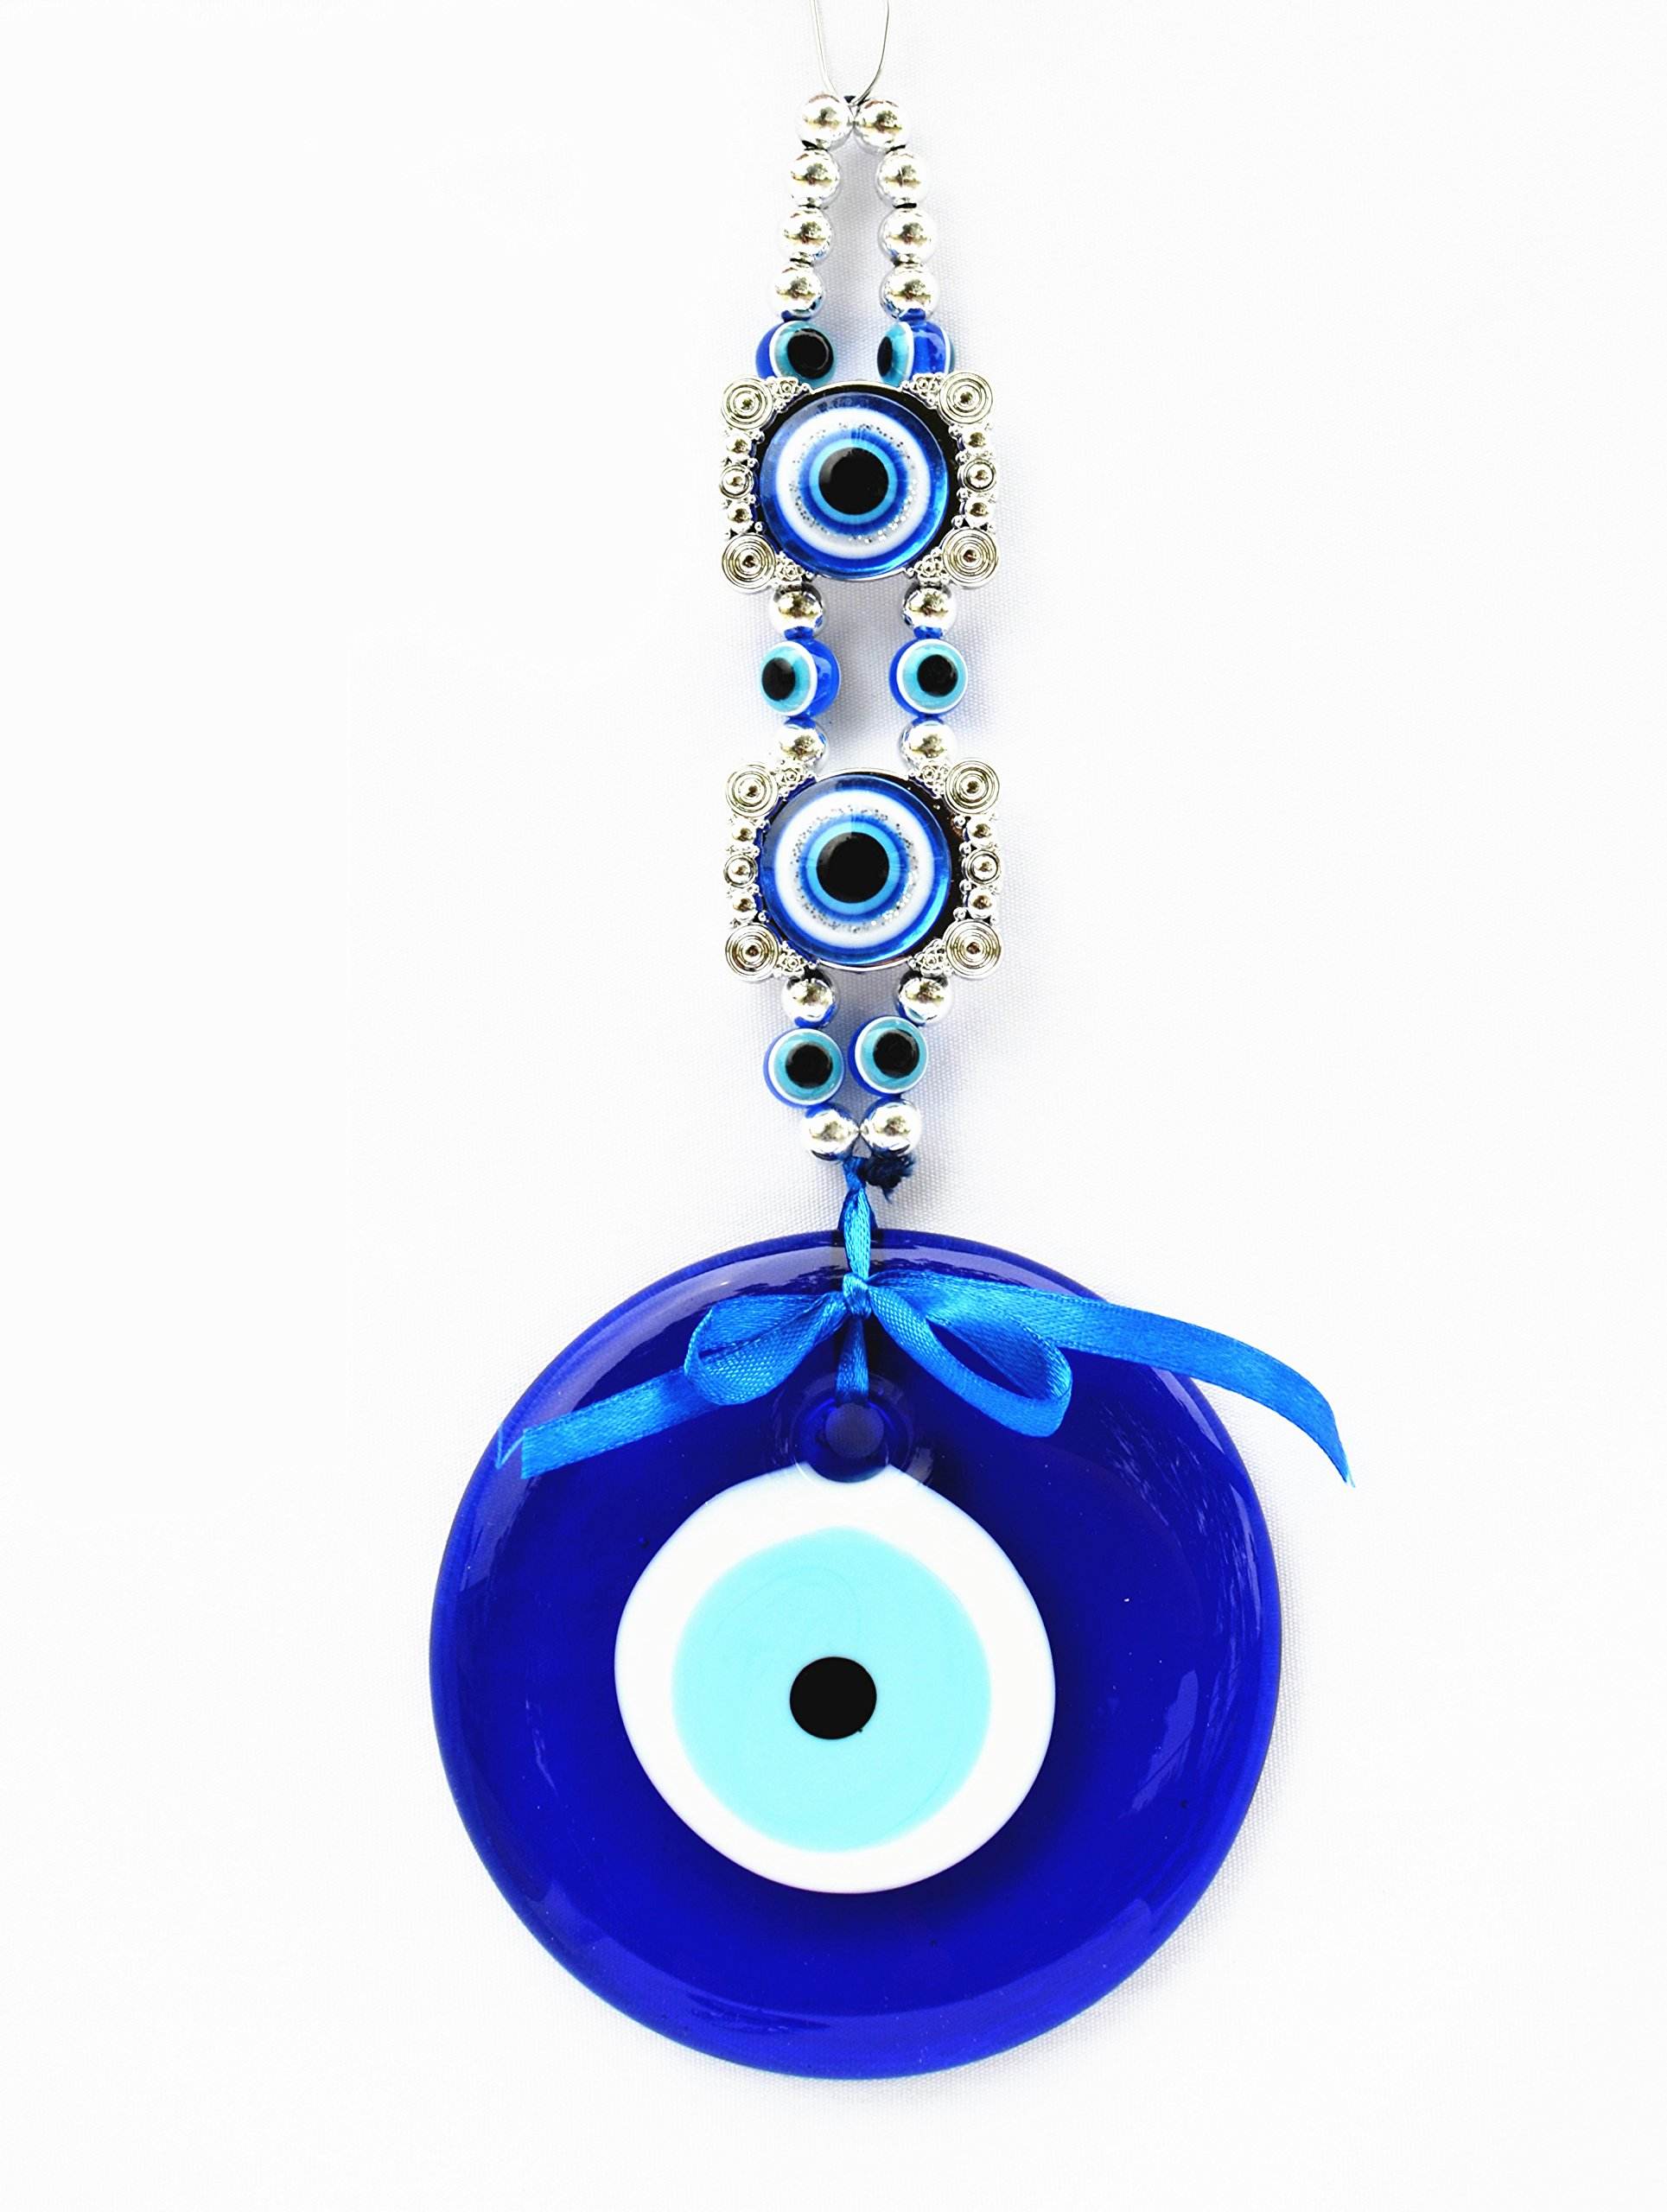 Blue Evil Eye Hanging for Protection (With a Betterdecor Bag)-058